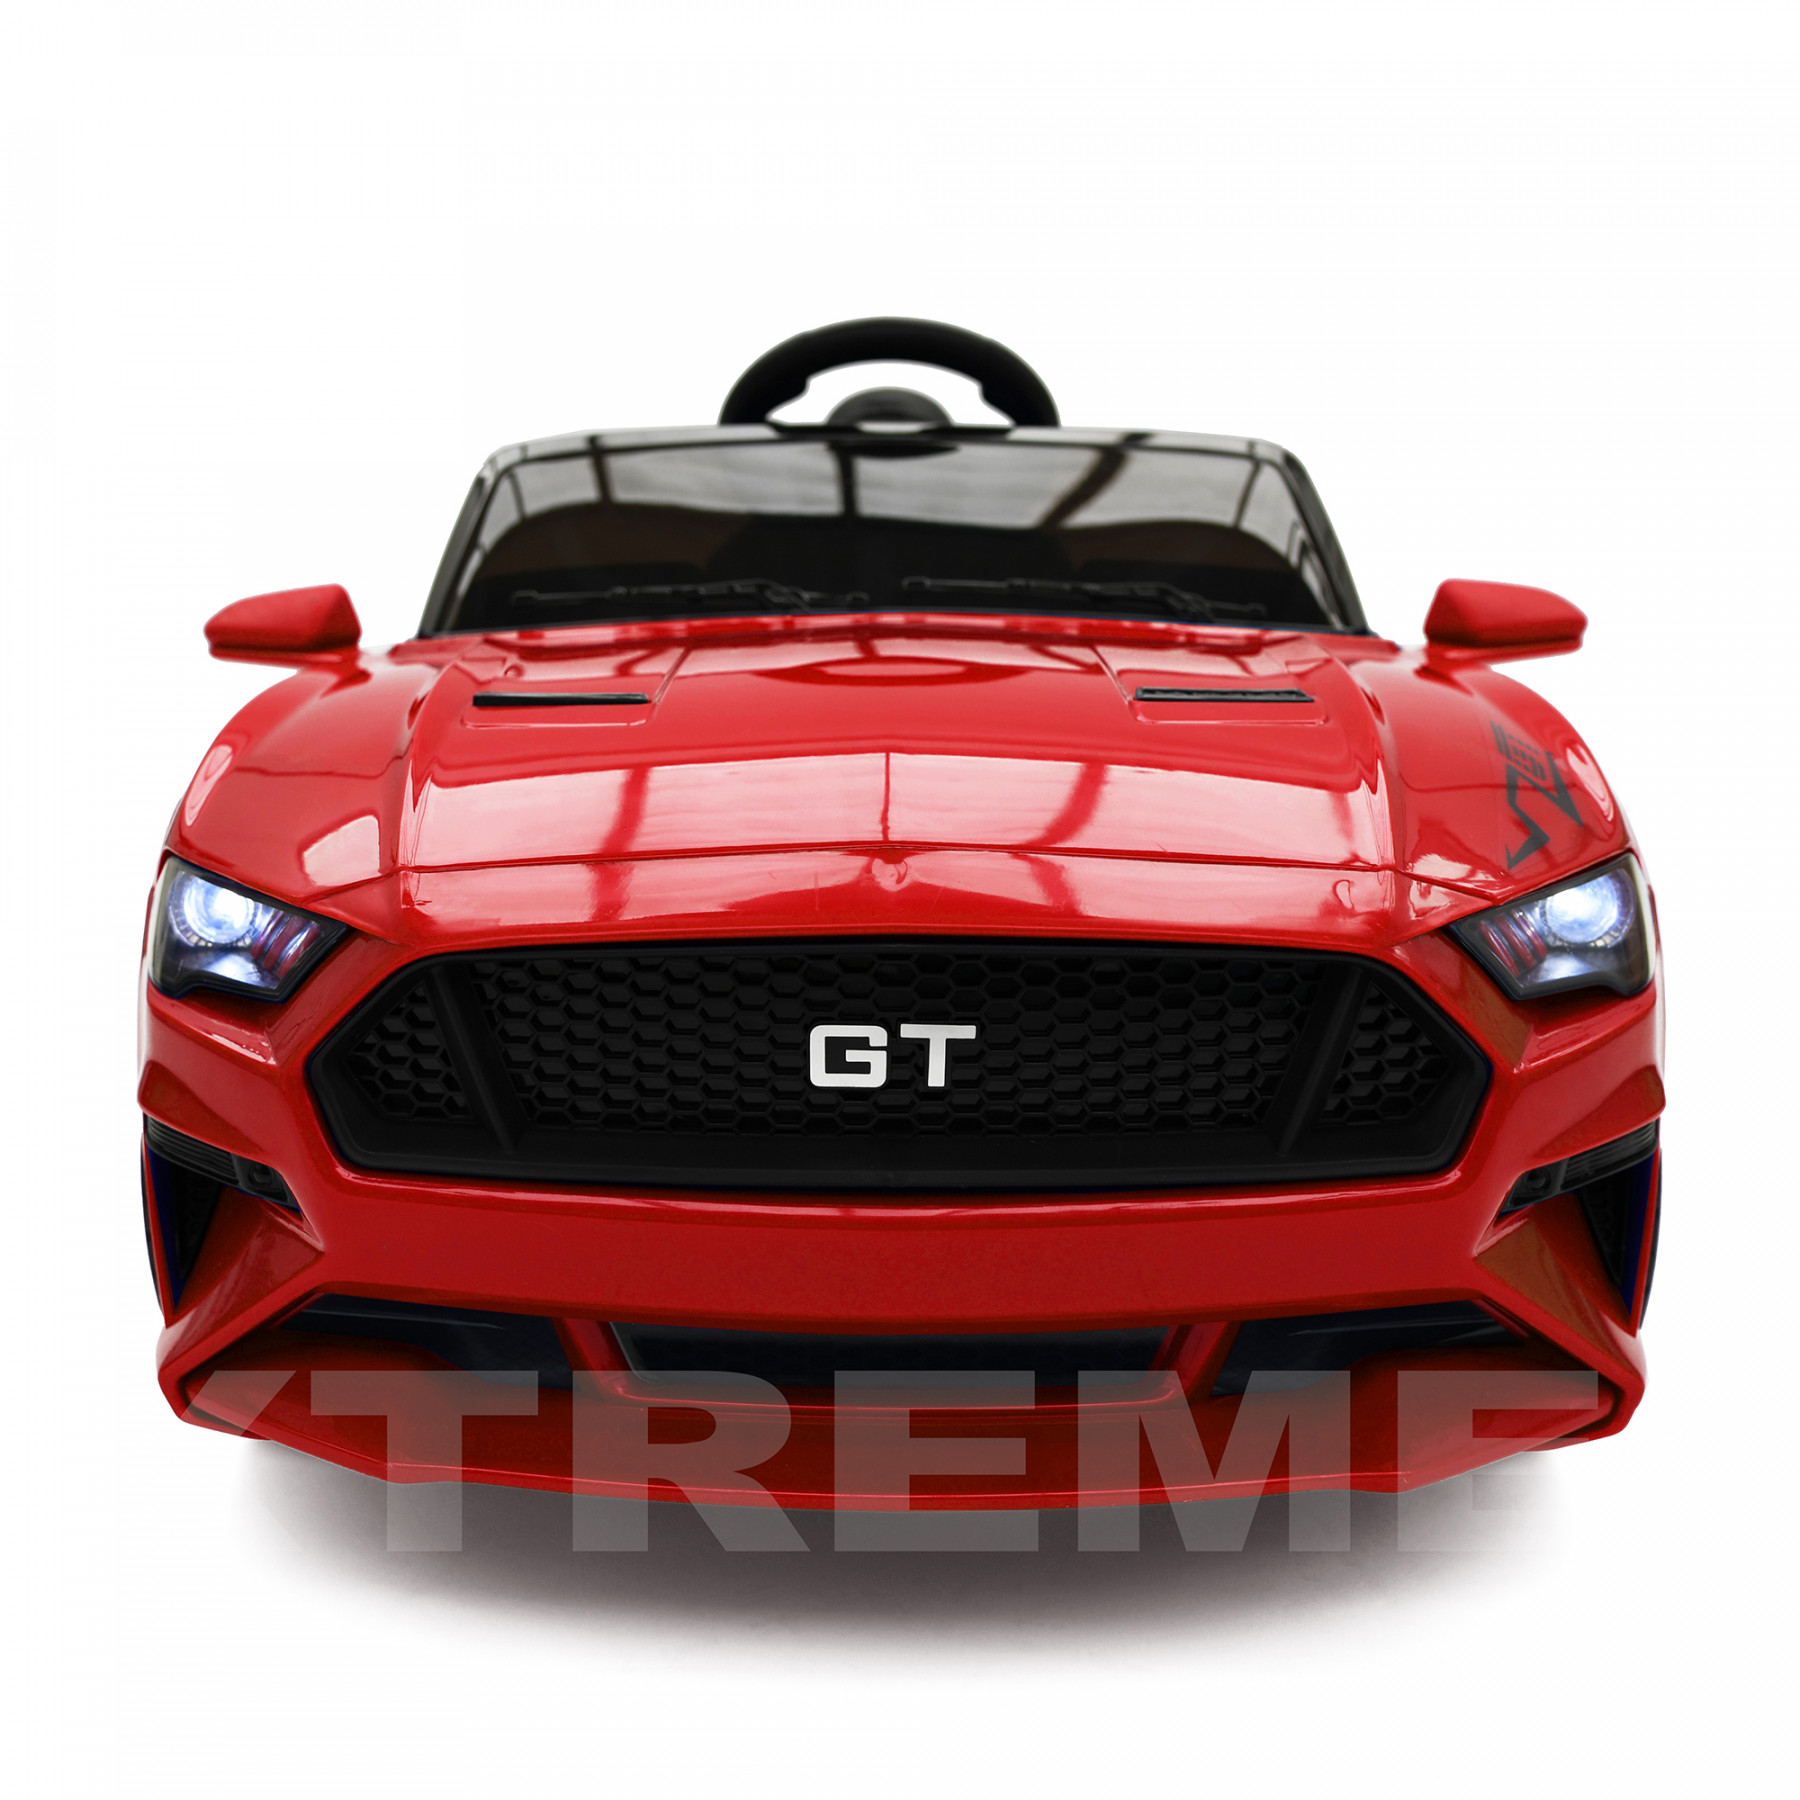 Xtreme 12v Ford Mustang GT Style Ride on Muscle Car Red